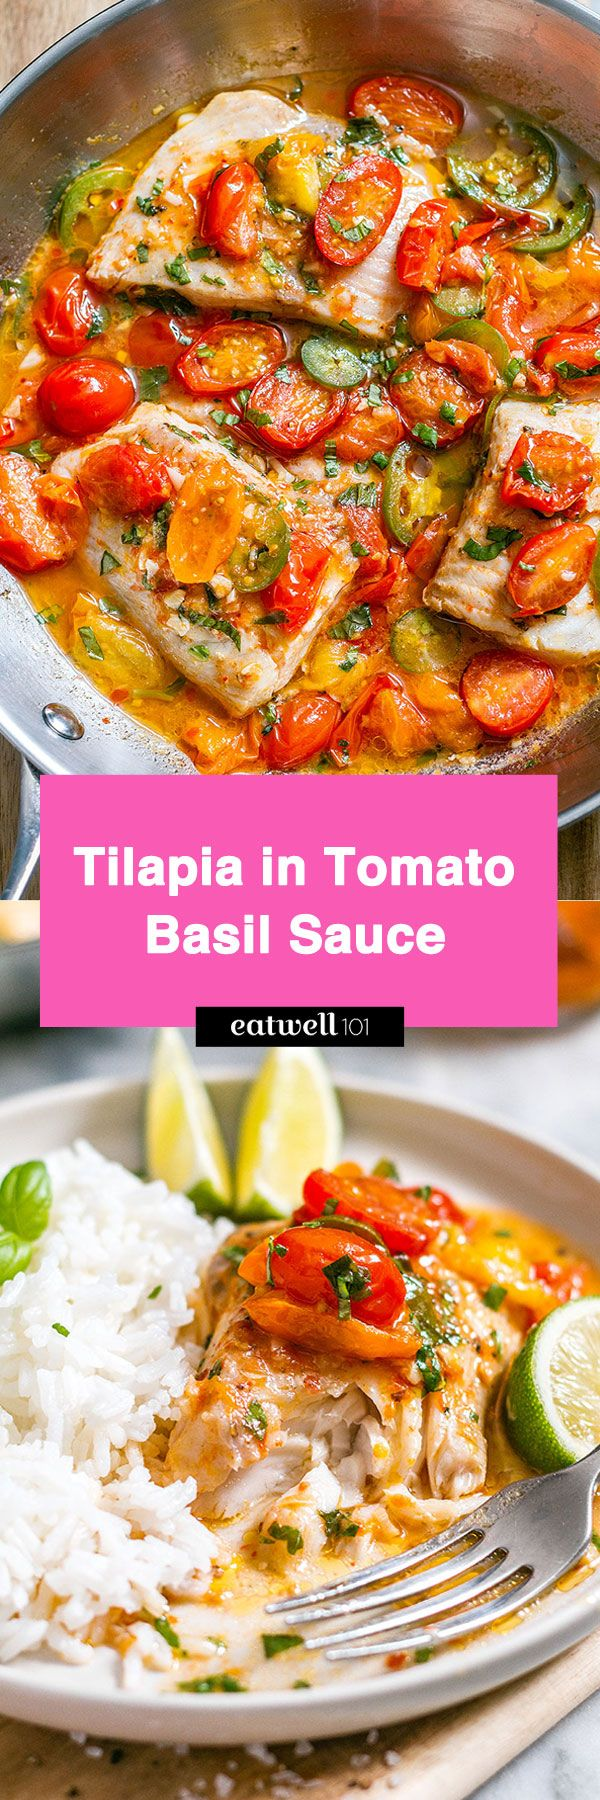 Made in 25 min from start to finish, this pan-seared tilapia recipe hits the sweet spot with its delicious tomato basil sauce.